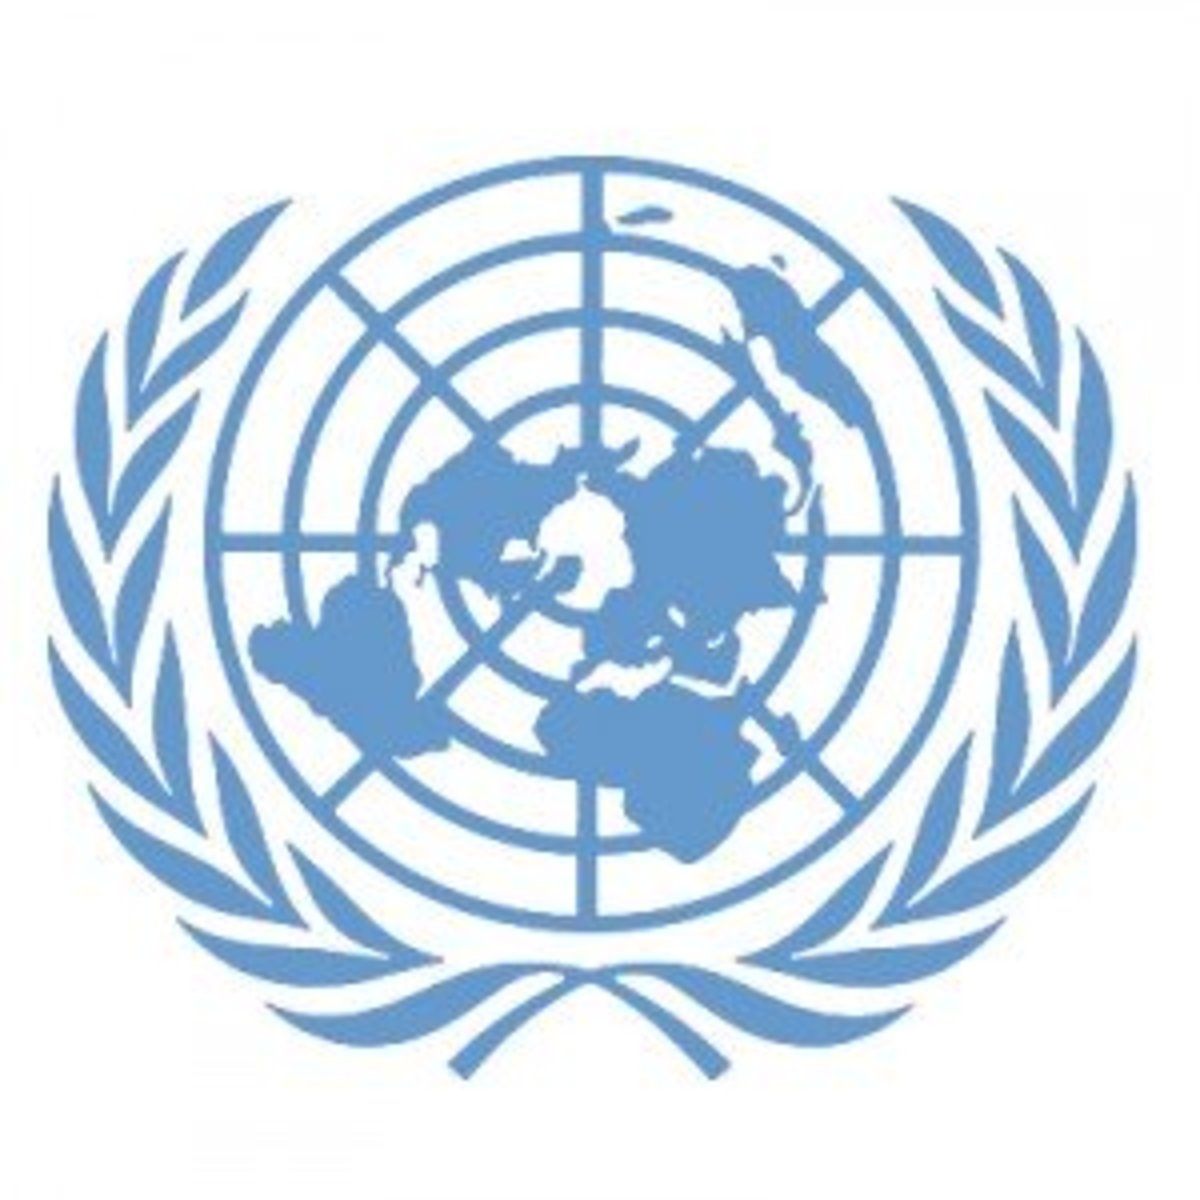 uno and world peace The official website of the universal peace federation international and the ambassadors for peace to achieving world peace of the united nations.